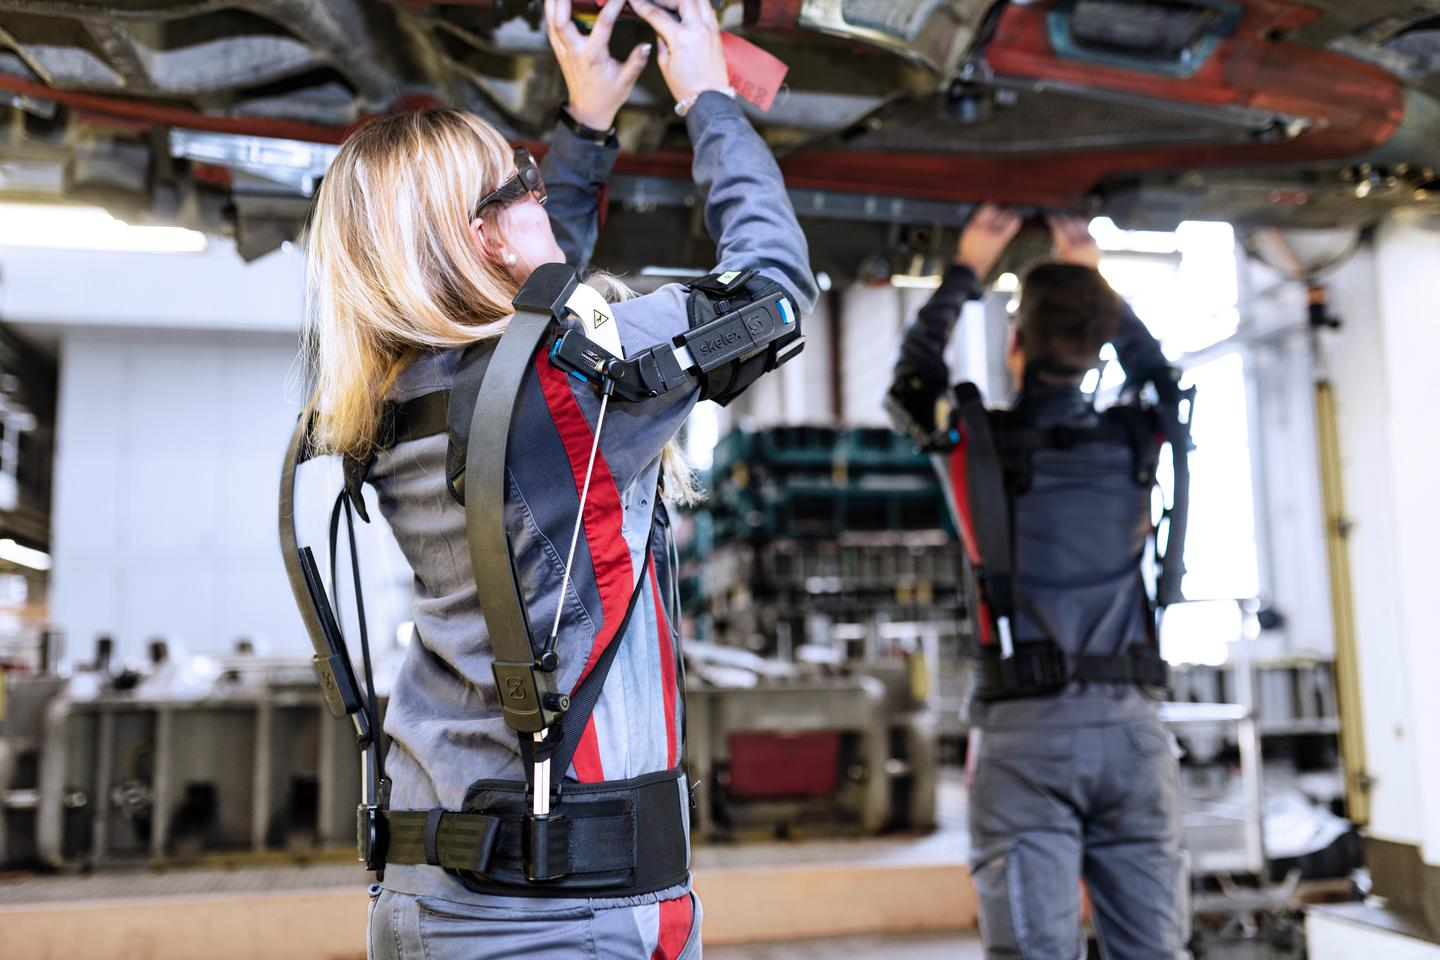 Audi is testing exoskeletons for performing overhead tasks